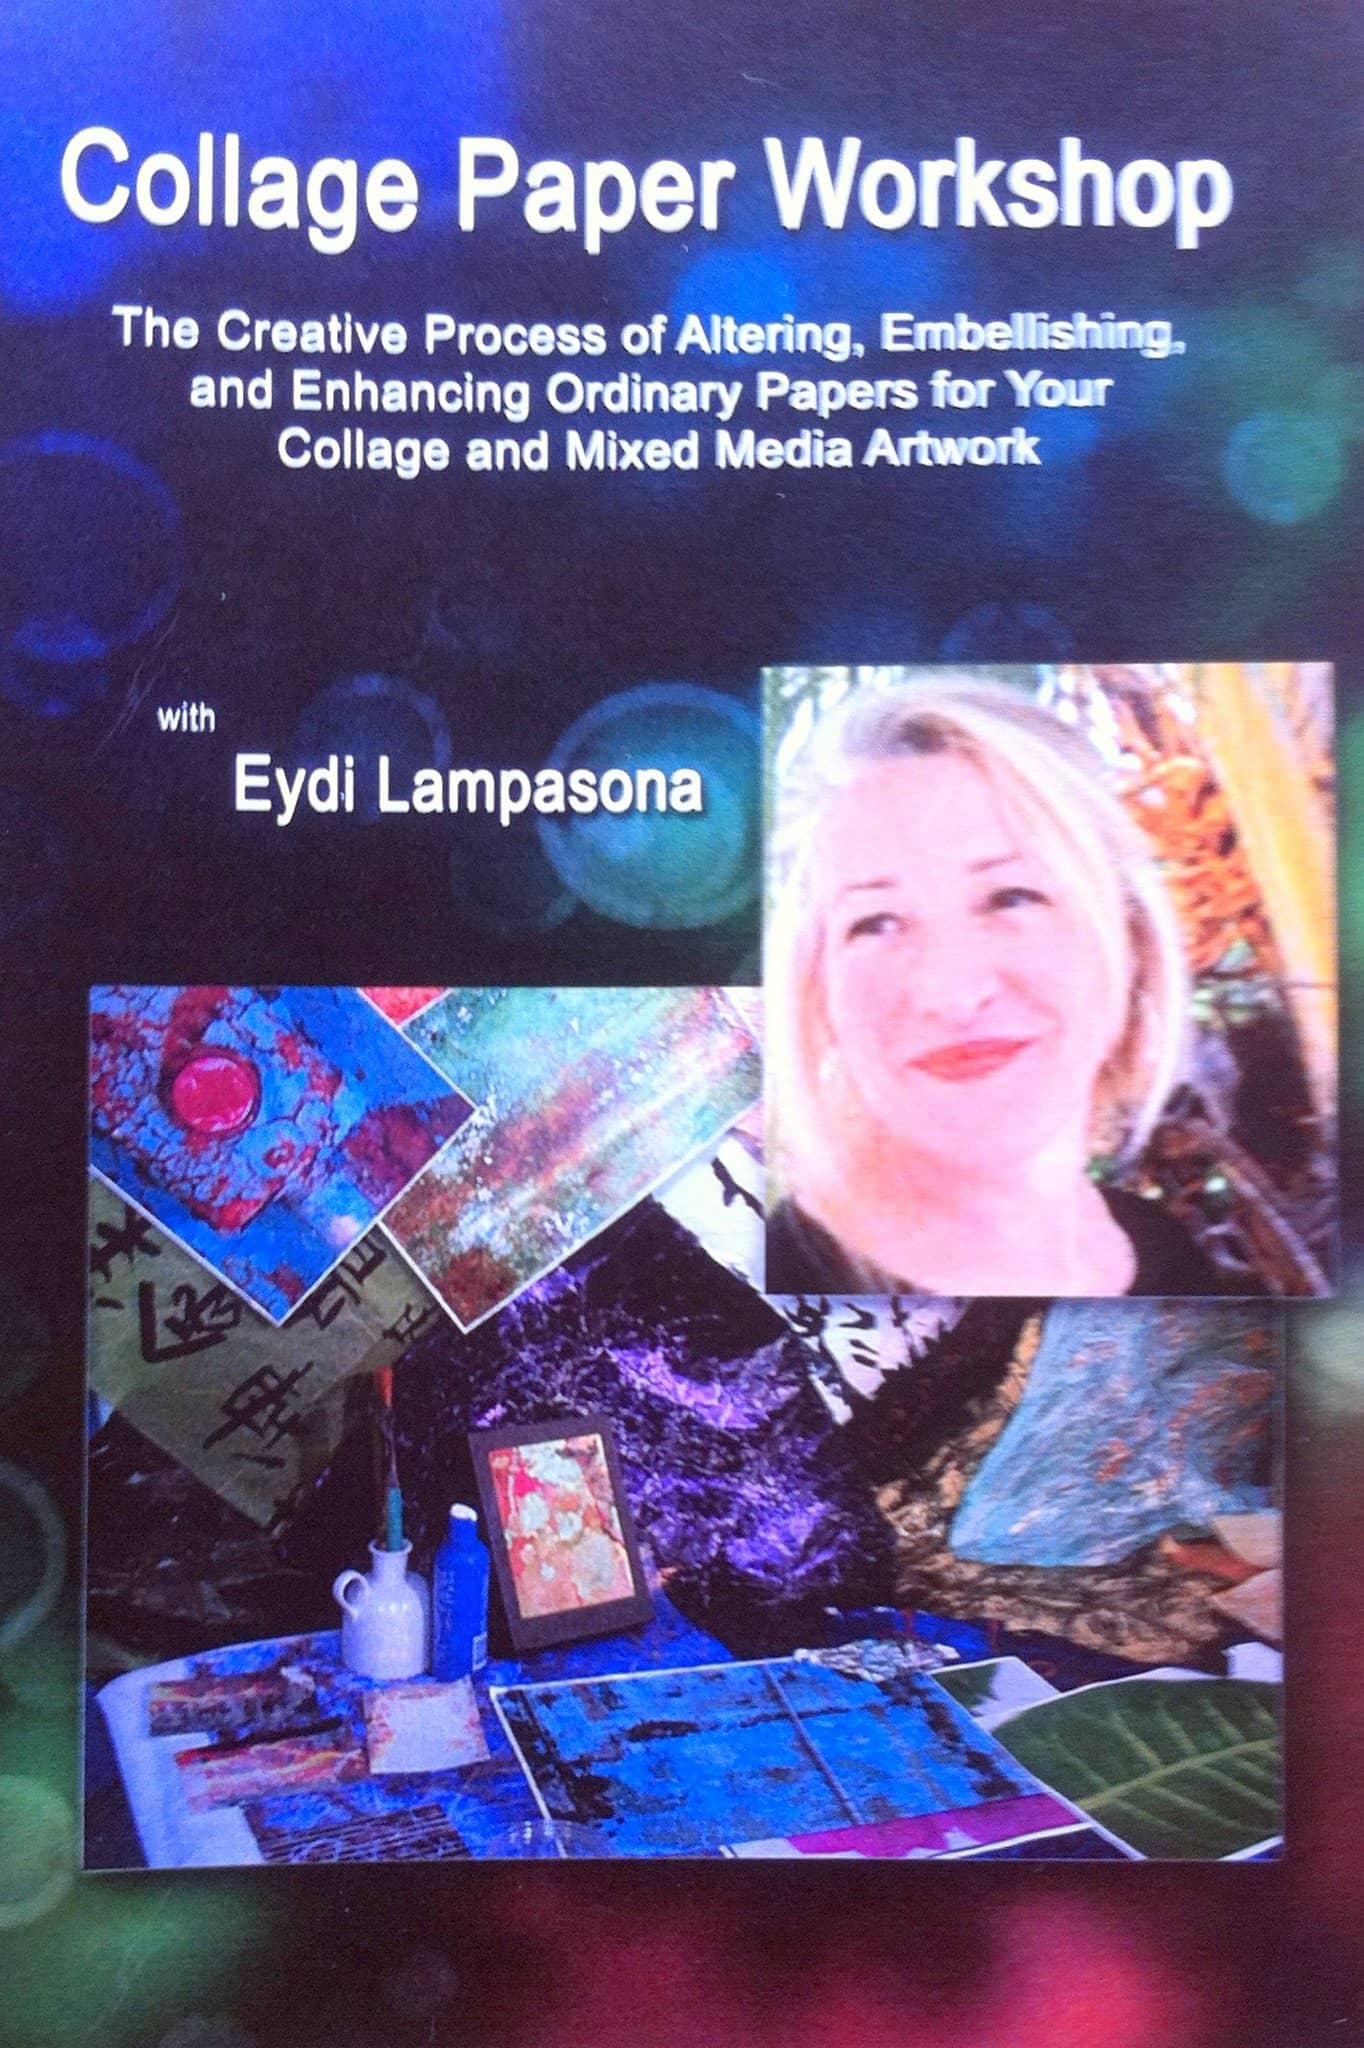 Collage Paper Workshop with Eydi Lampasona Art Instruction Video-DVD from Creative Catalyst